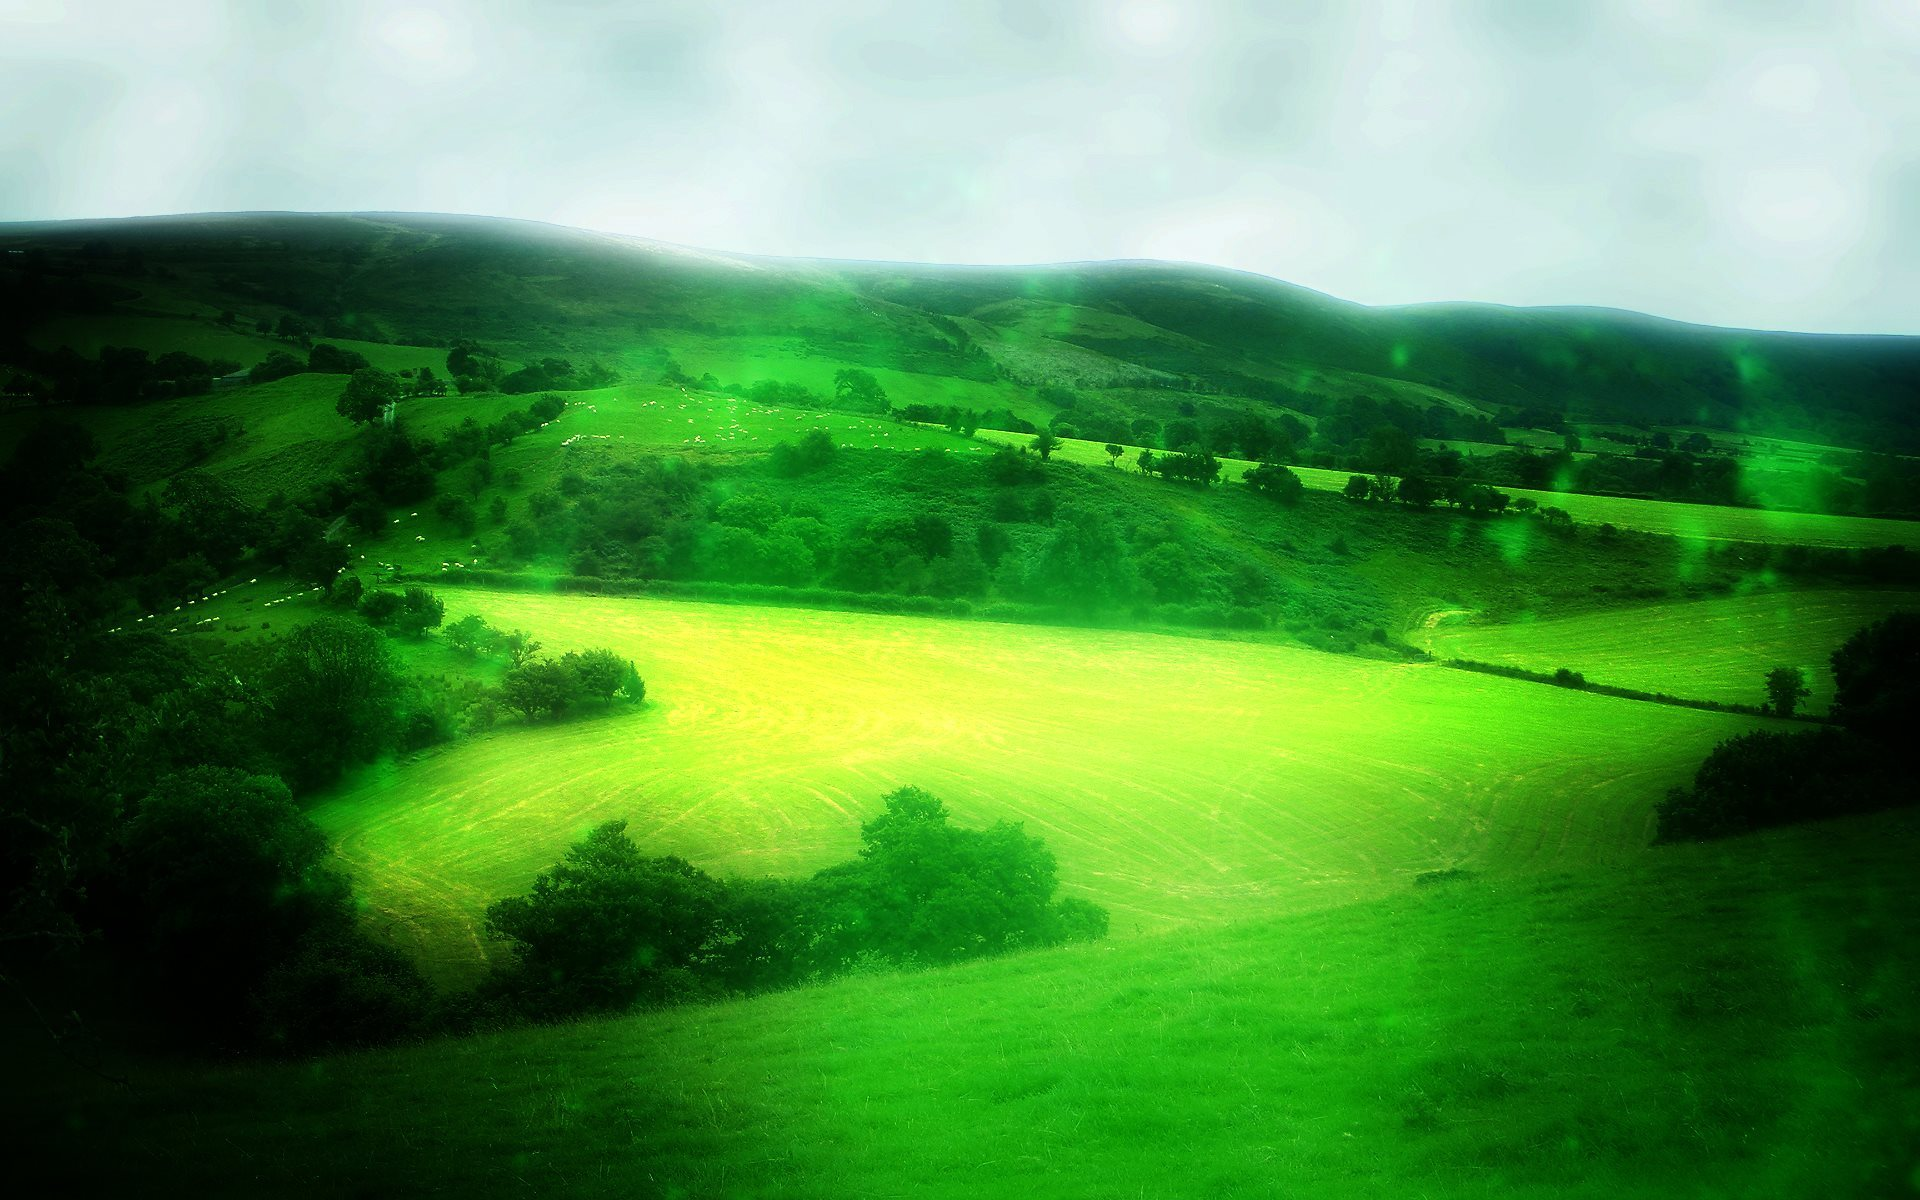 Green Scenery Wallpaper 1920x1200 768x480